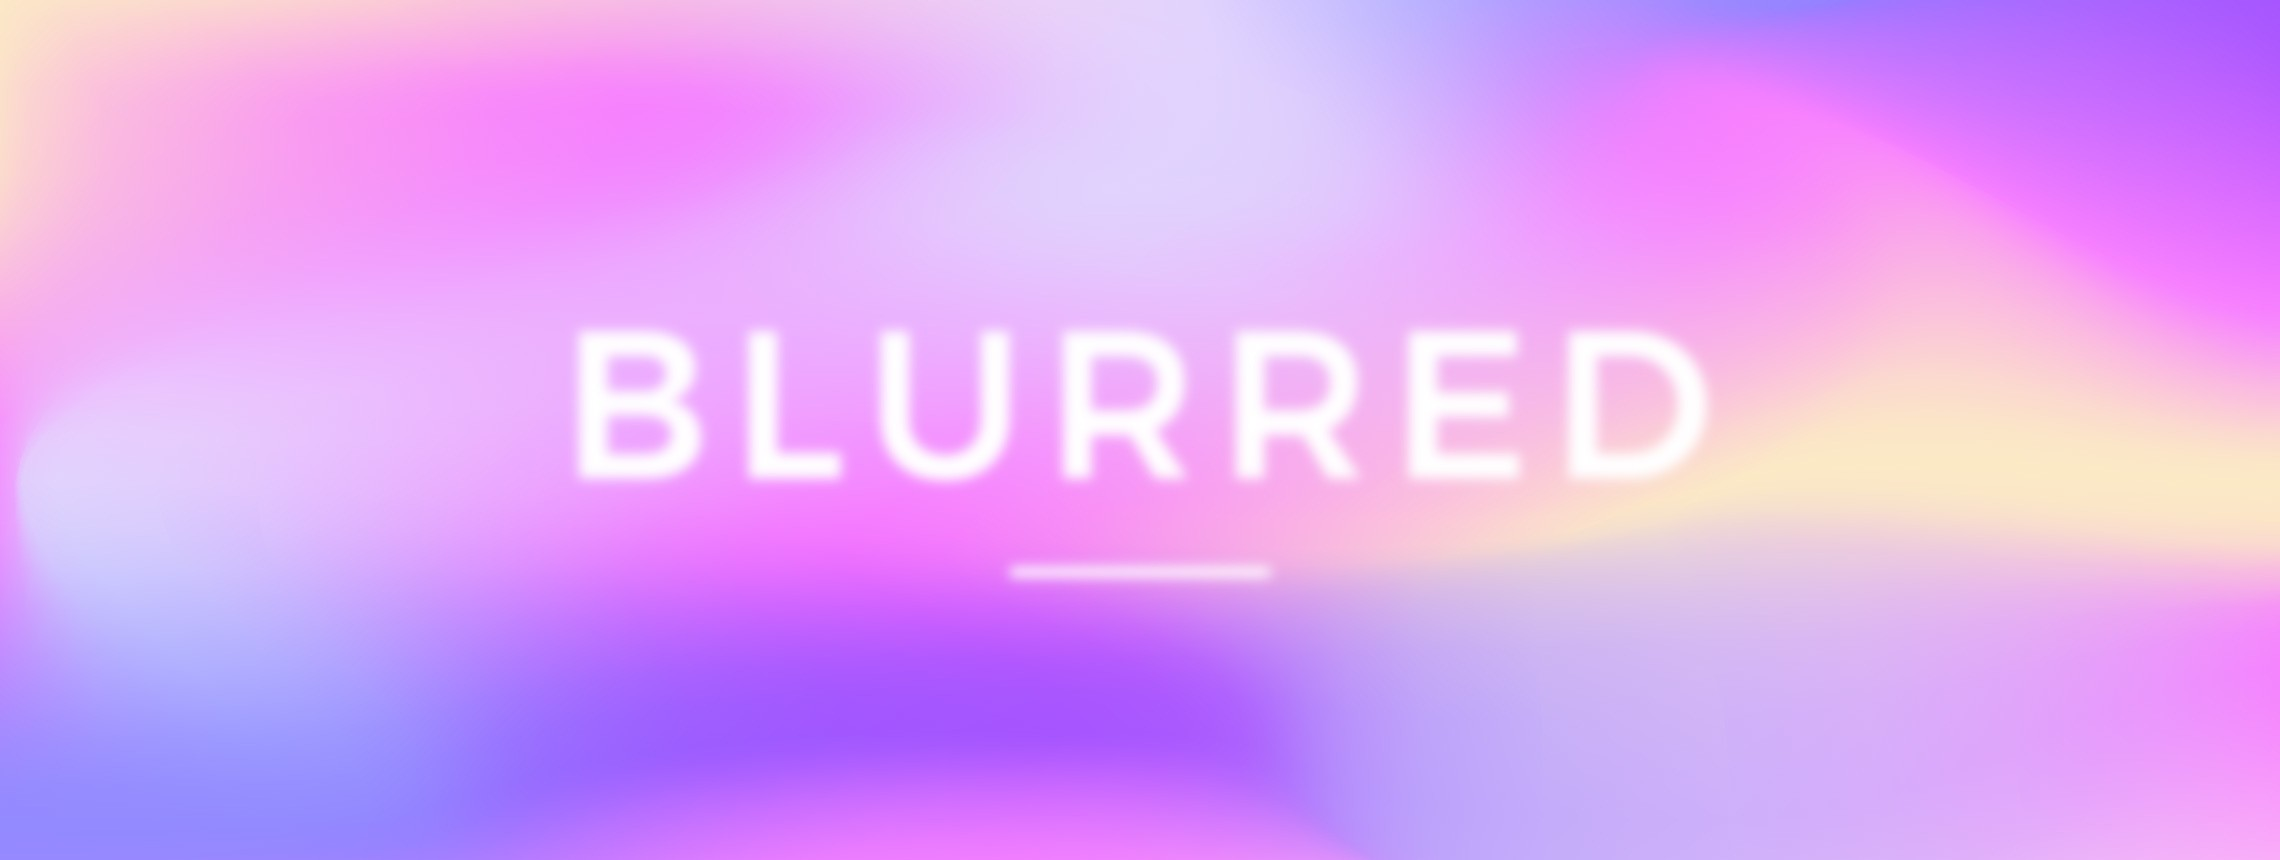 How to Make a Colorful Blurred Background